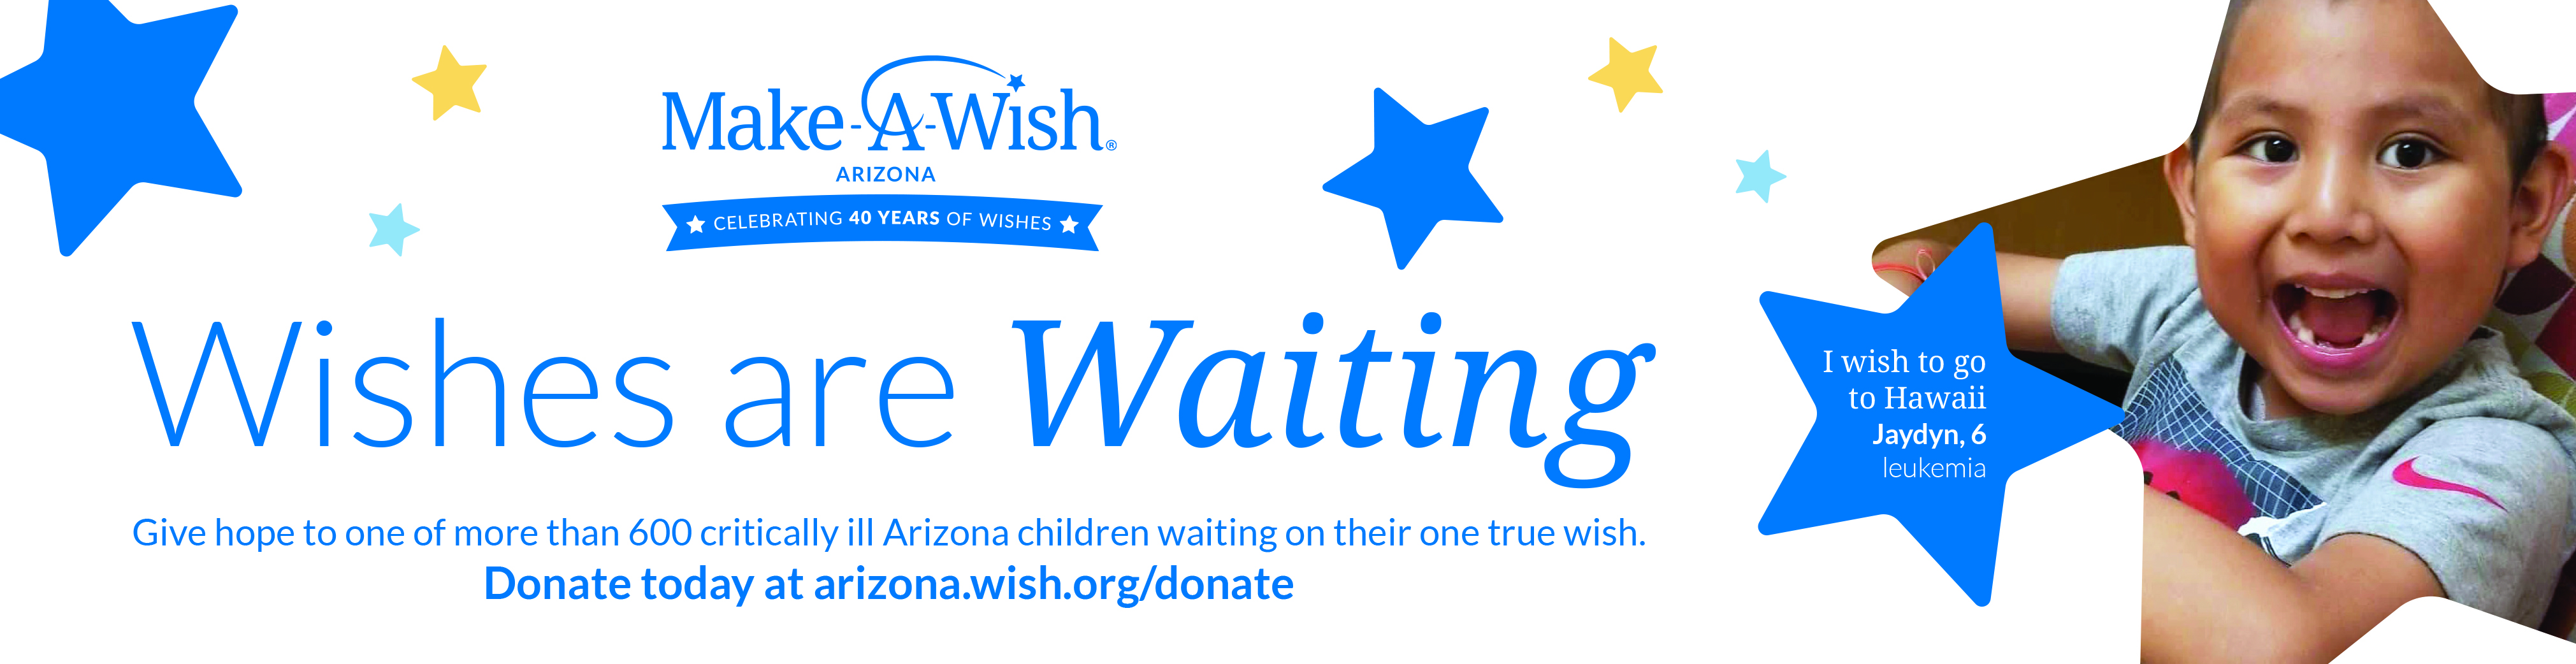 Visit Make-A-Wish Arizona billboard